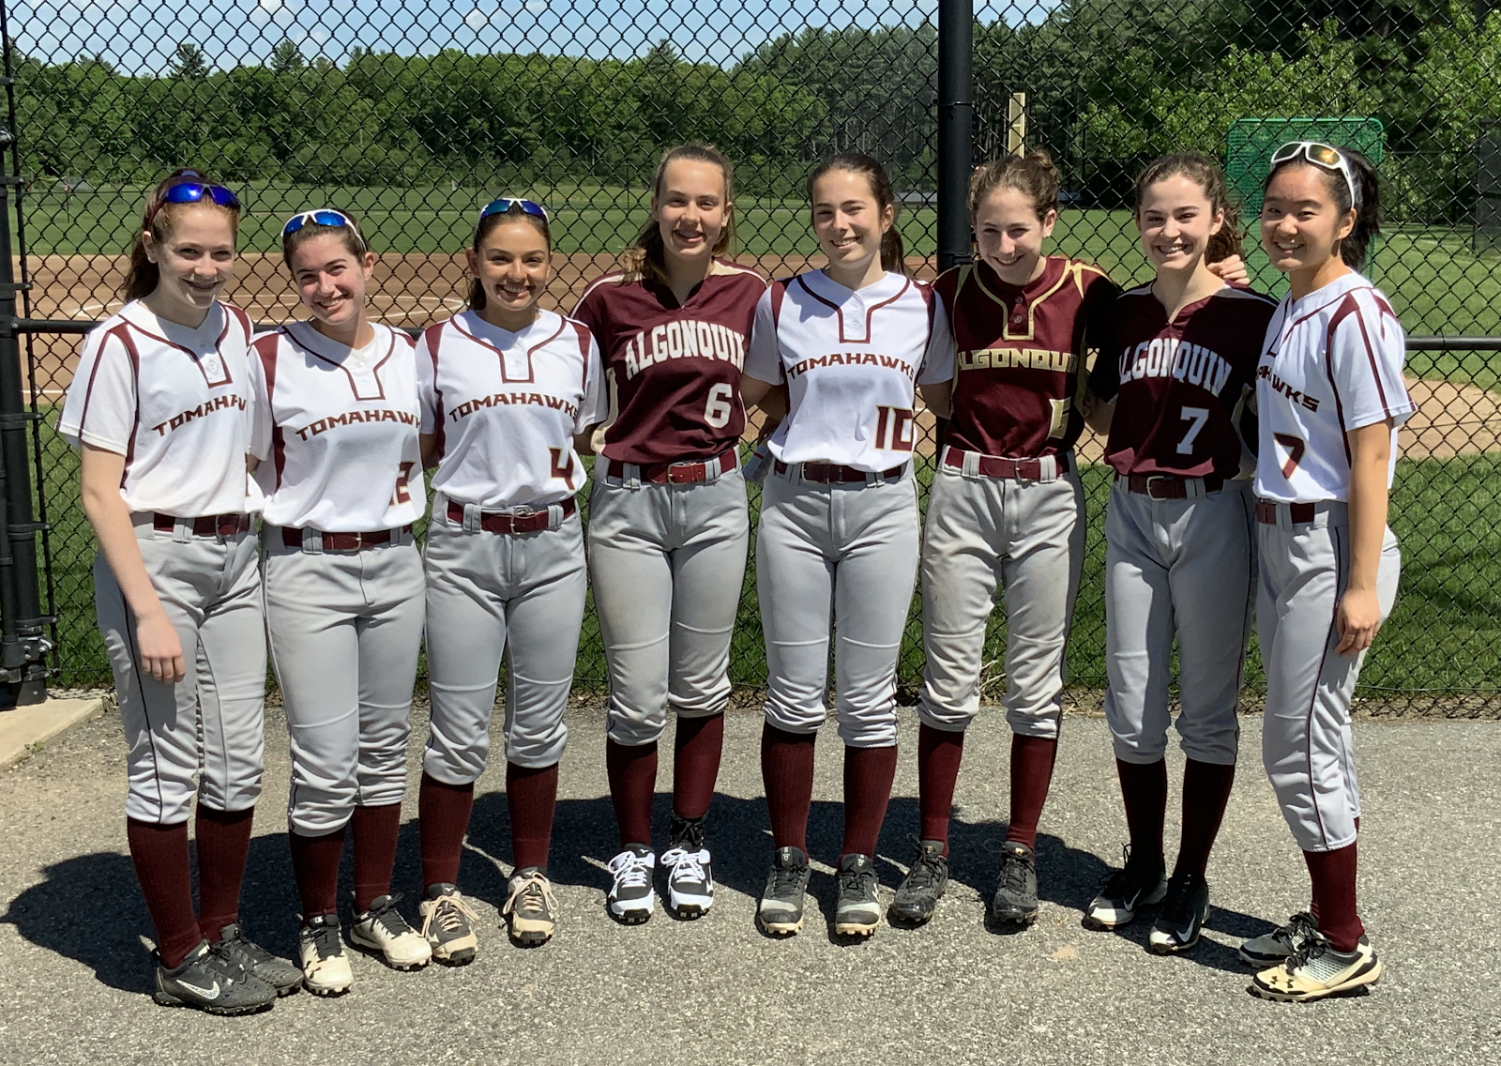 [From left to right] freshmen Charlotte Roiter, Taylor Hodge, Christina Kennedy, Meredith Sainsbury, Megan Tucker, Eve Roiter, Alison Hojlo and Angela Ke are just a few of the nine freshman that are on varsity softball.  While the team is currently going through a rough patch, they look to a bright future with the talent of their young stars.